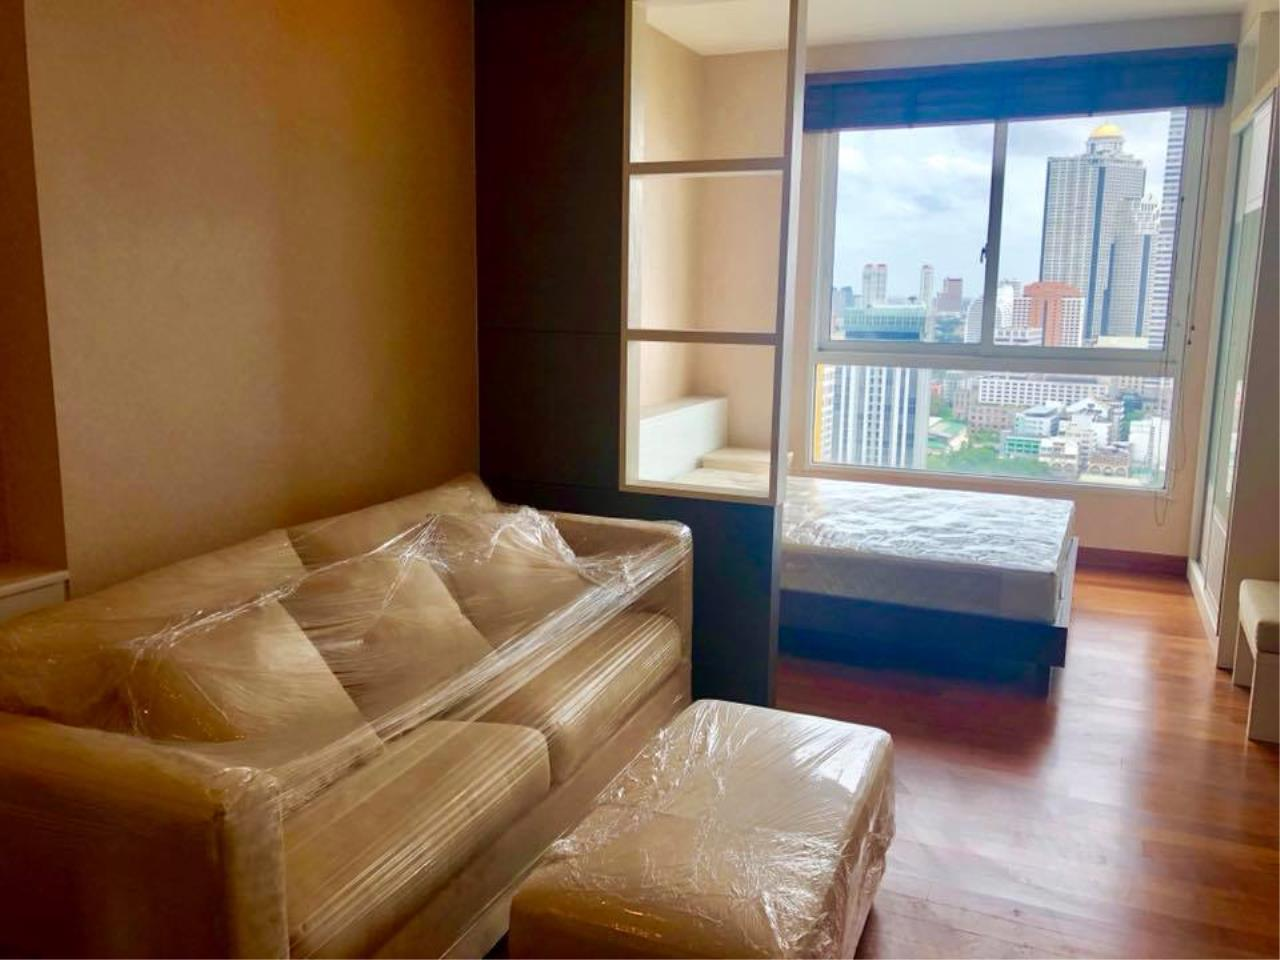 Quality Life Property Agency's S A L E !! || IVY SATHORN 10|| 1BR 33.64 Sq.m. NEW UNIT!! 1